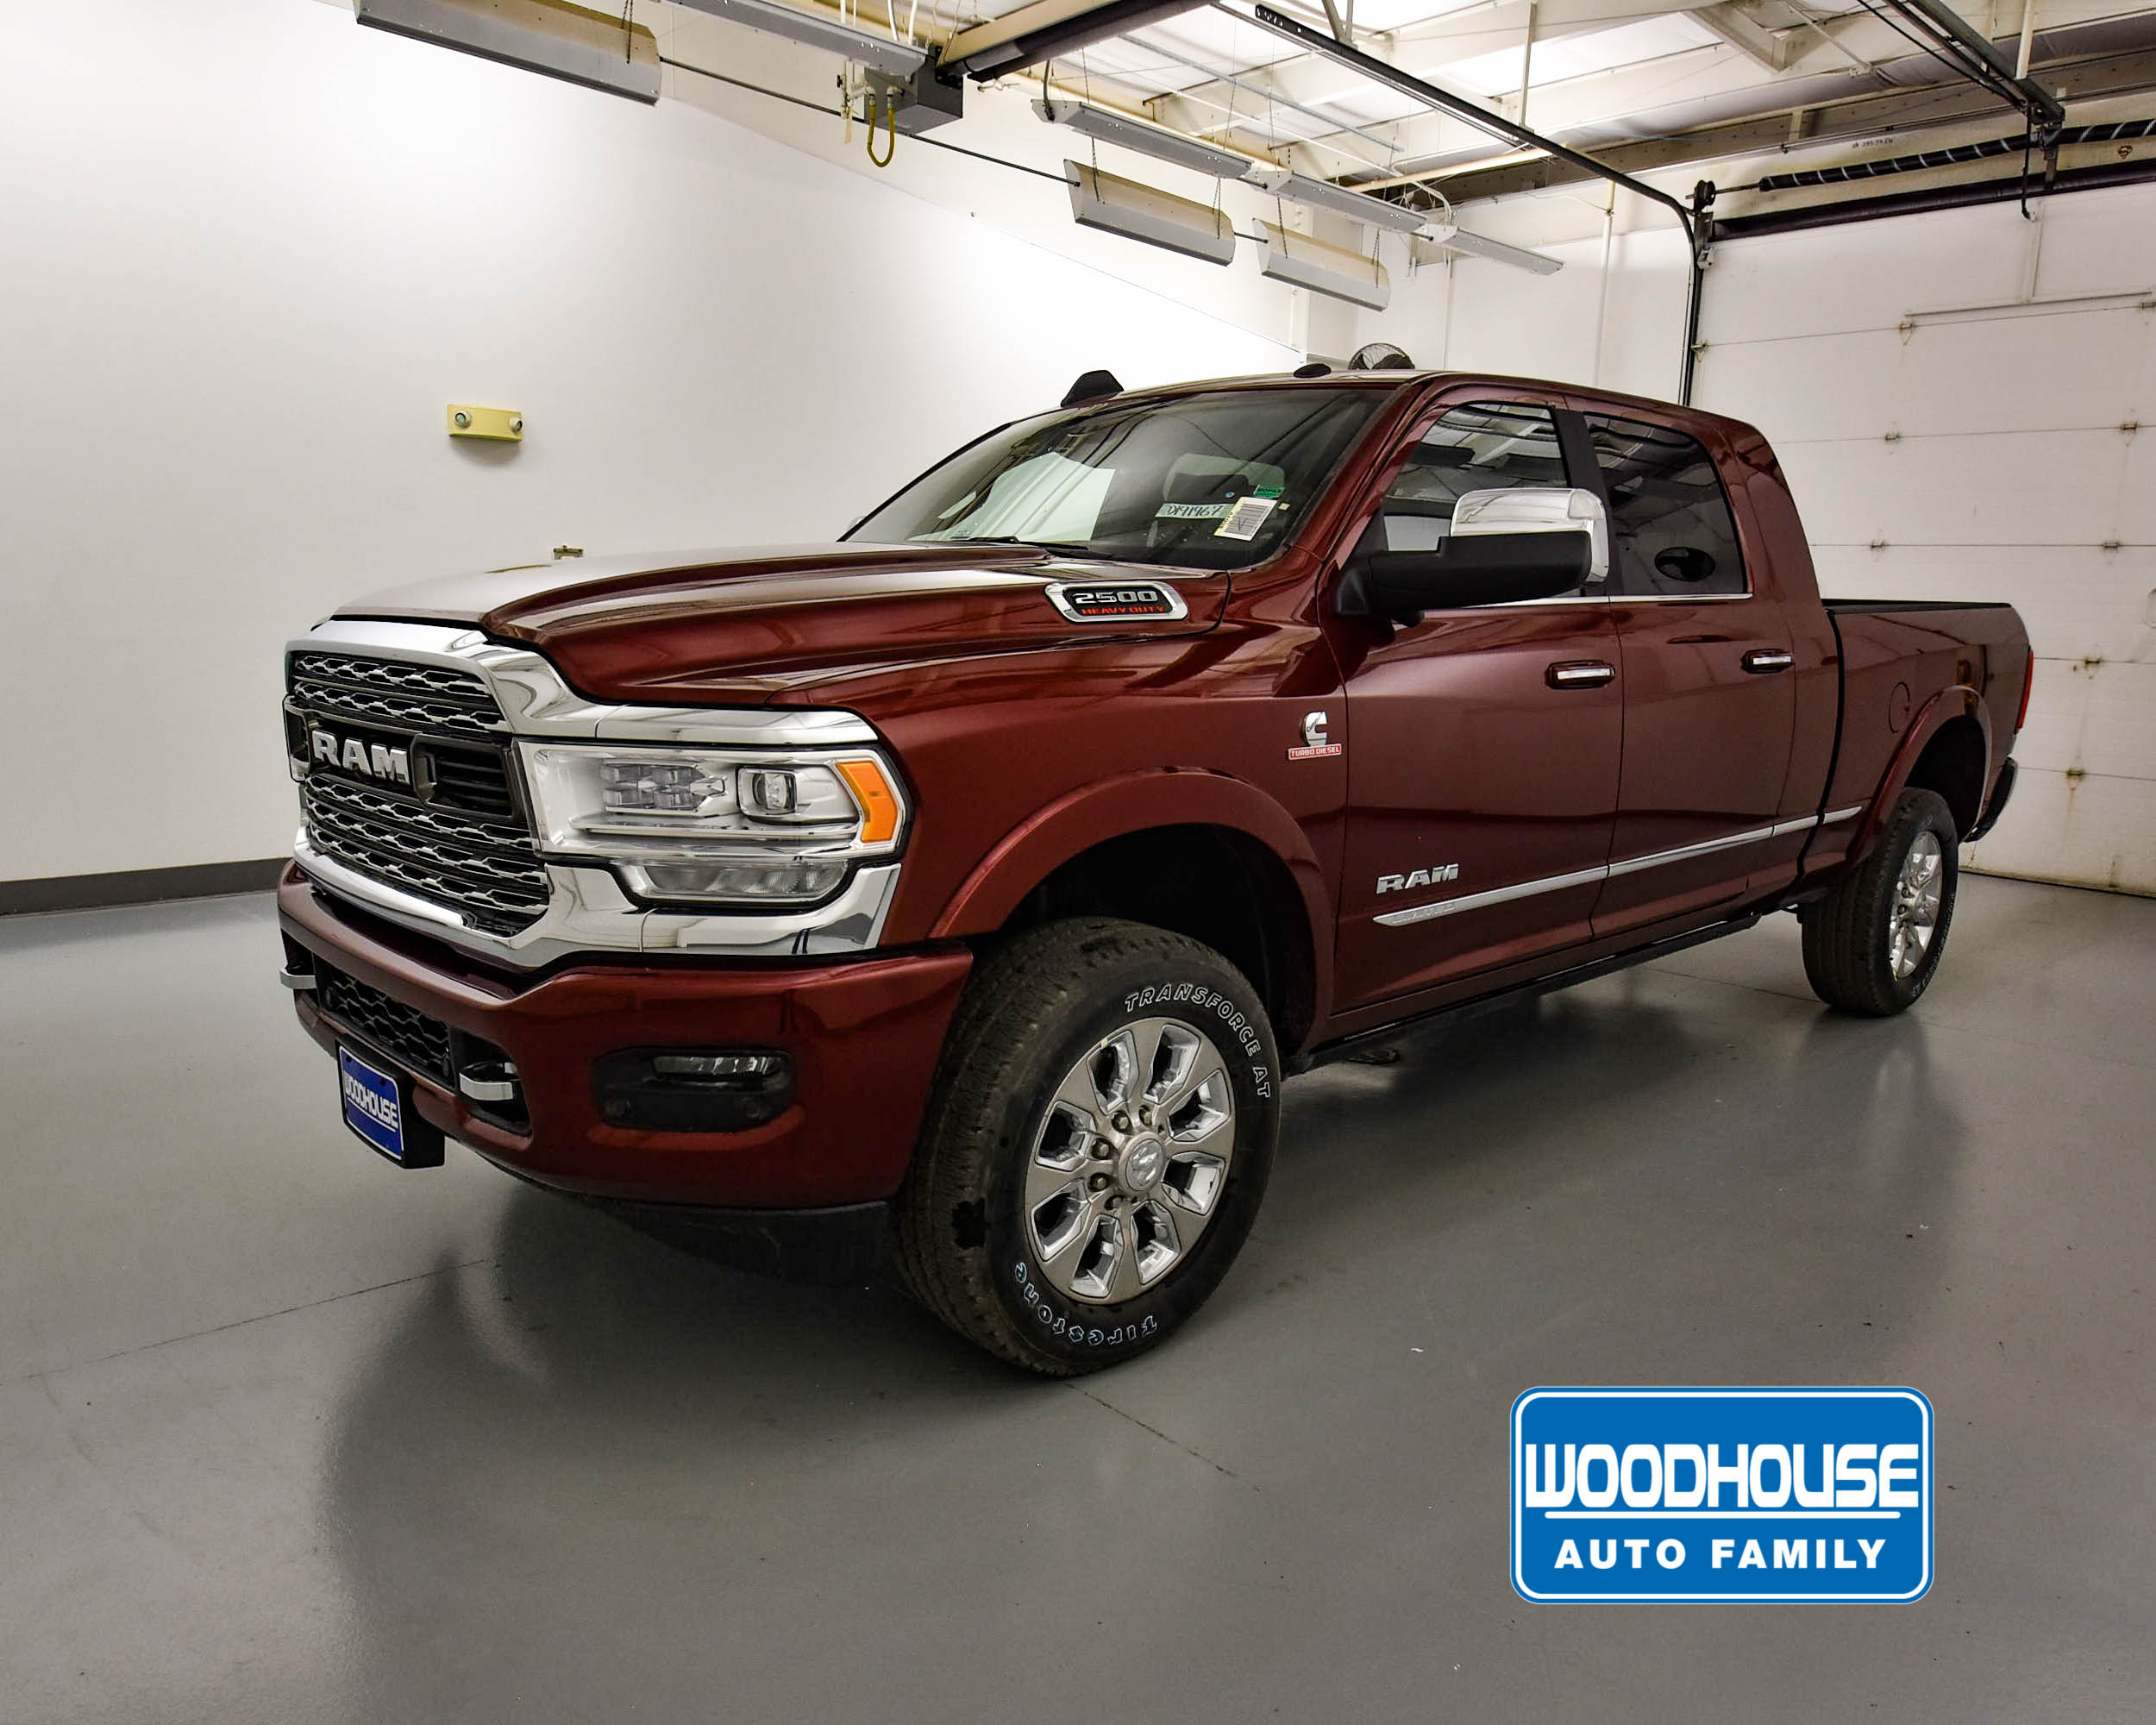 Woodhouse New 2019 Ram 2500 For Sale Chrysler Dodge Jeep Ram